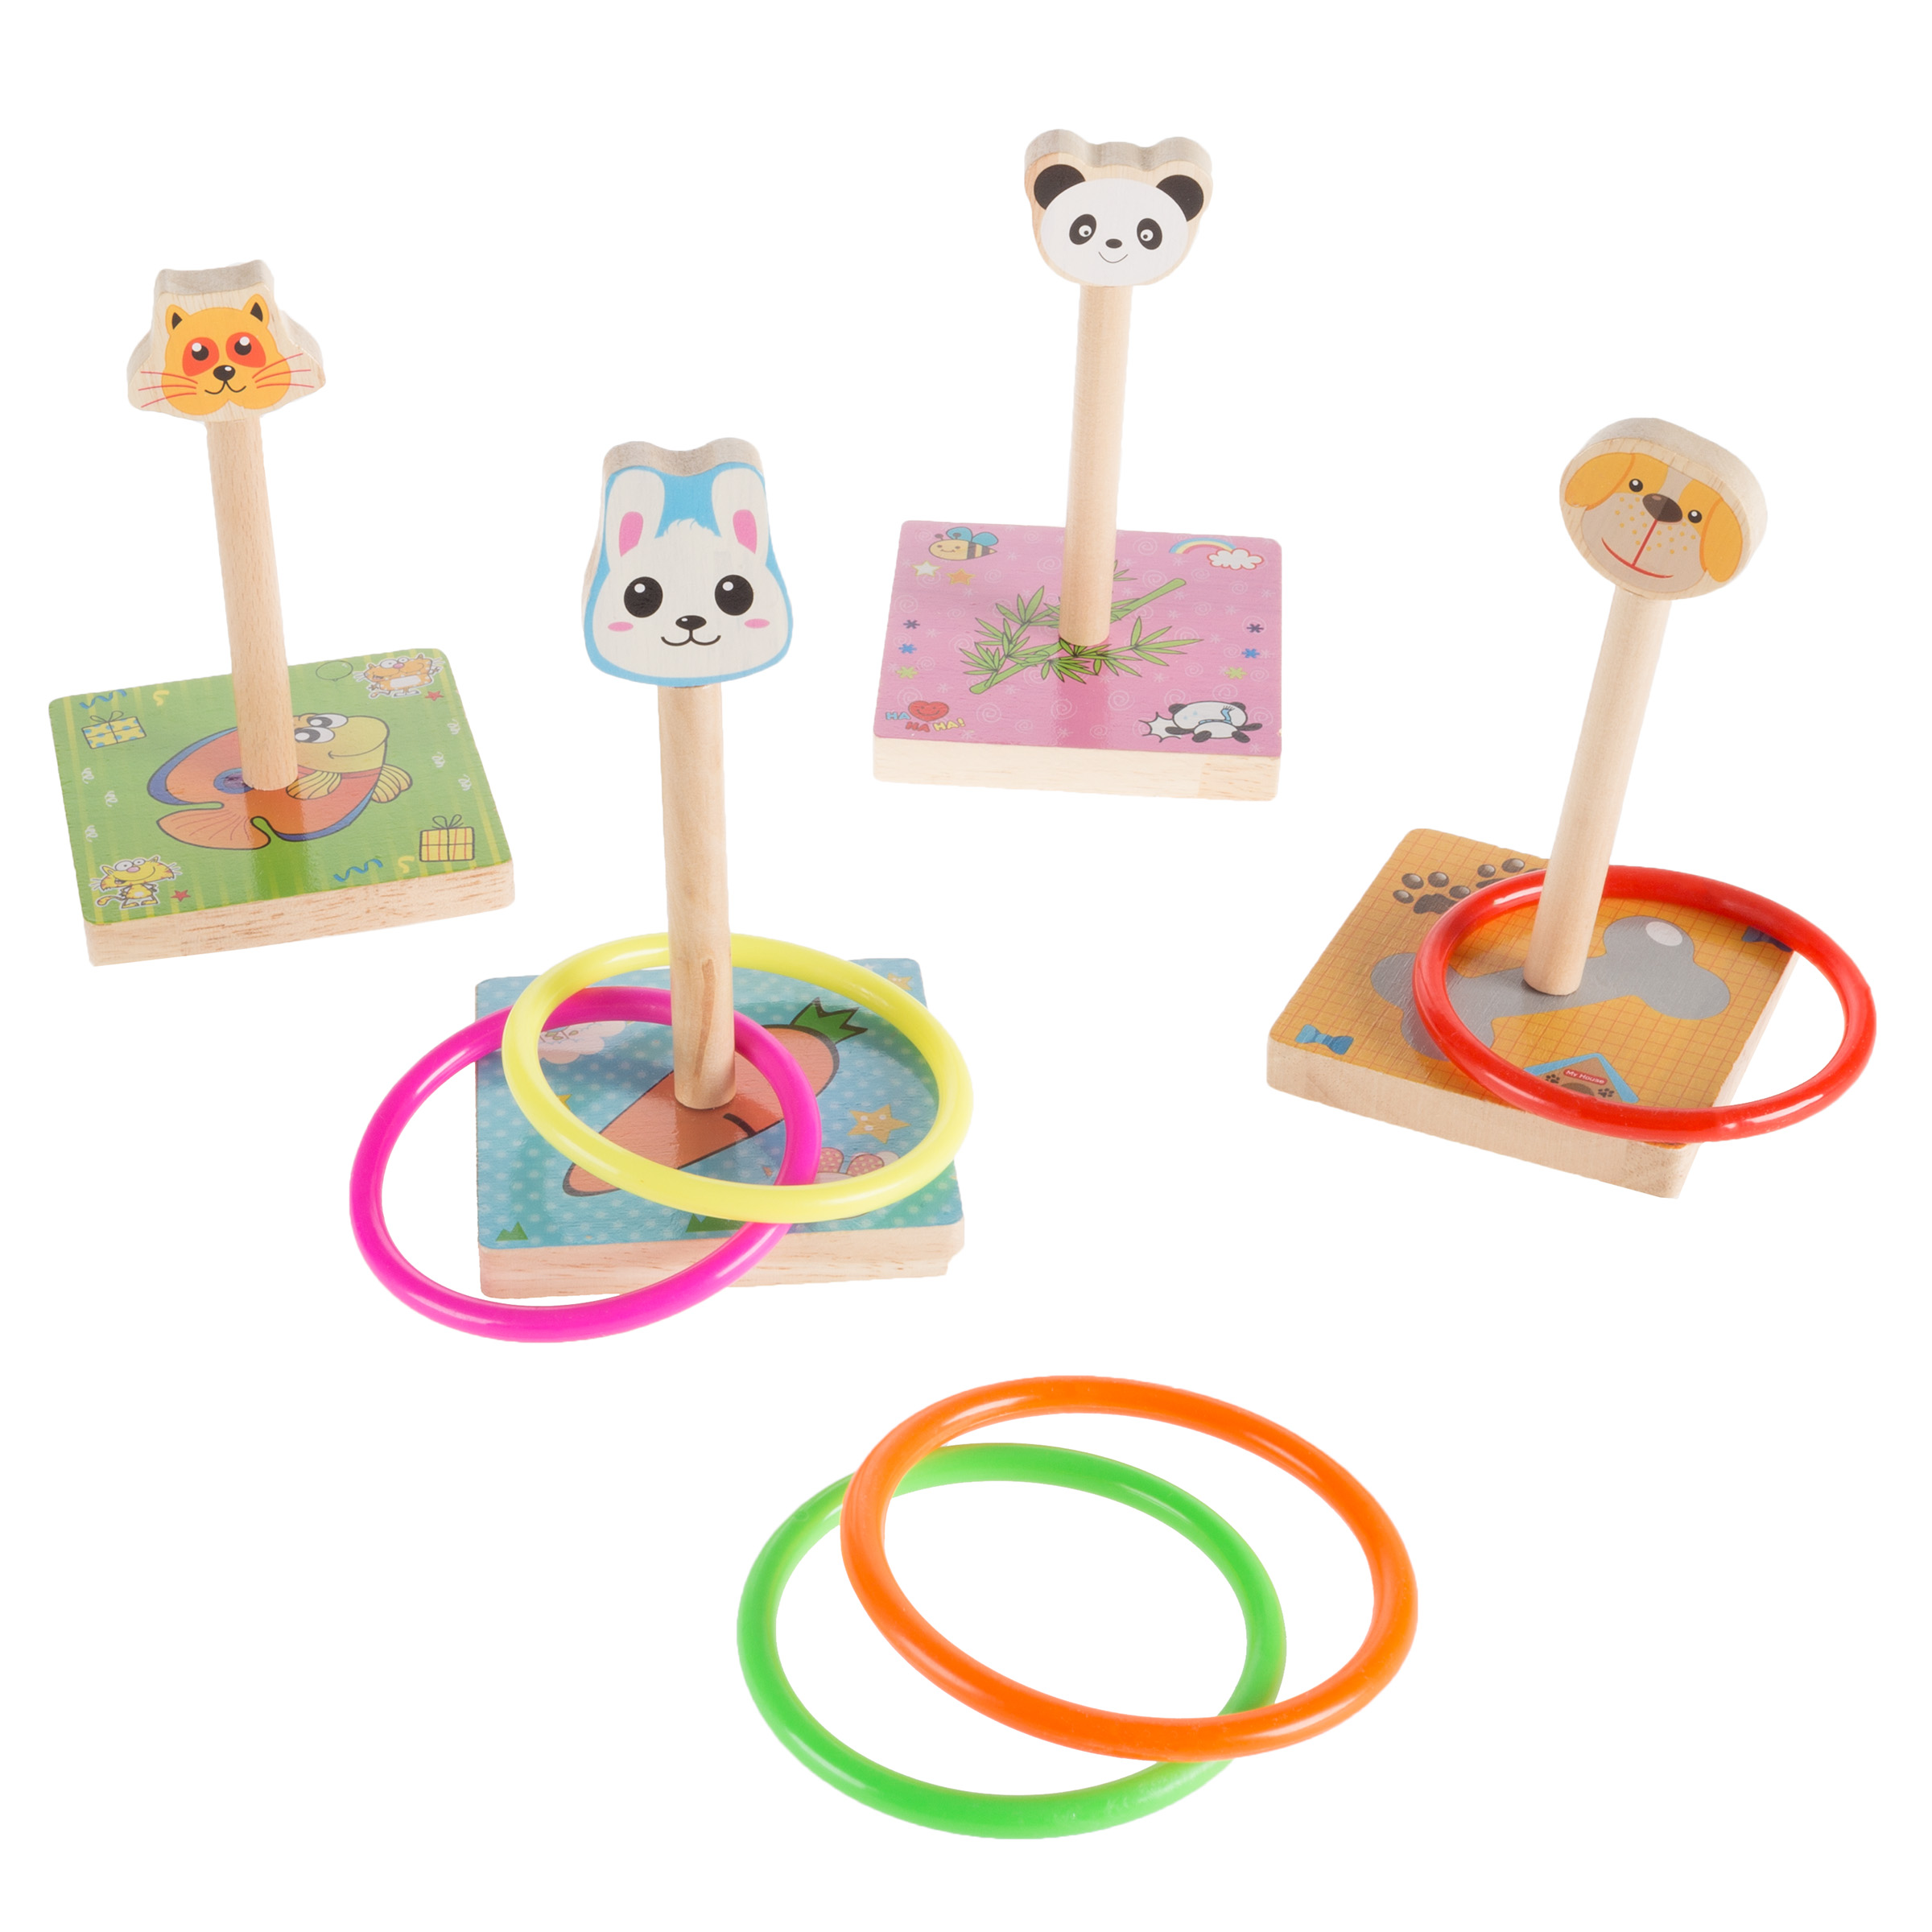 Kids Zoo Animal Ring Toss Game Set-Indoor Outdoor Old-Fashioned Horseshoe Toy-Fun... by Trademark Global LLC